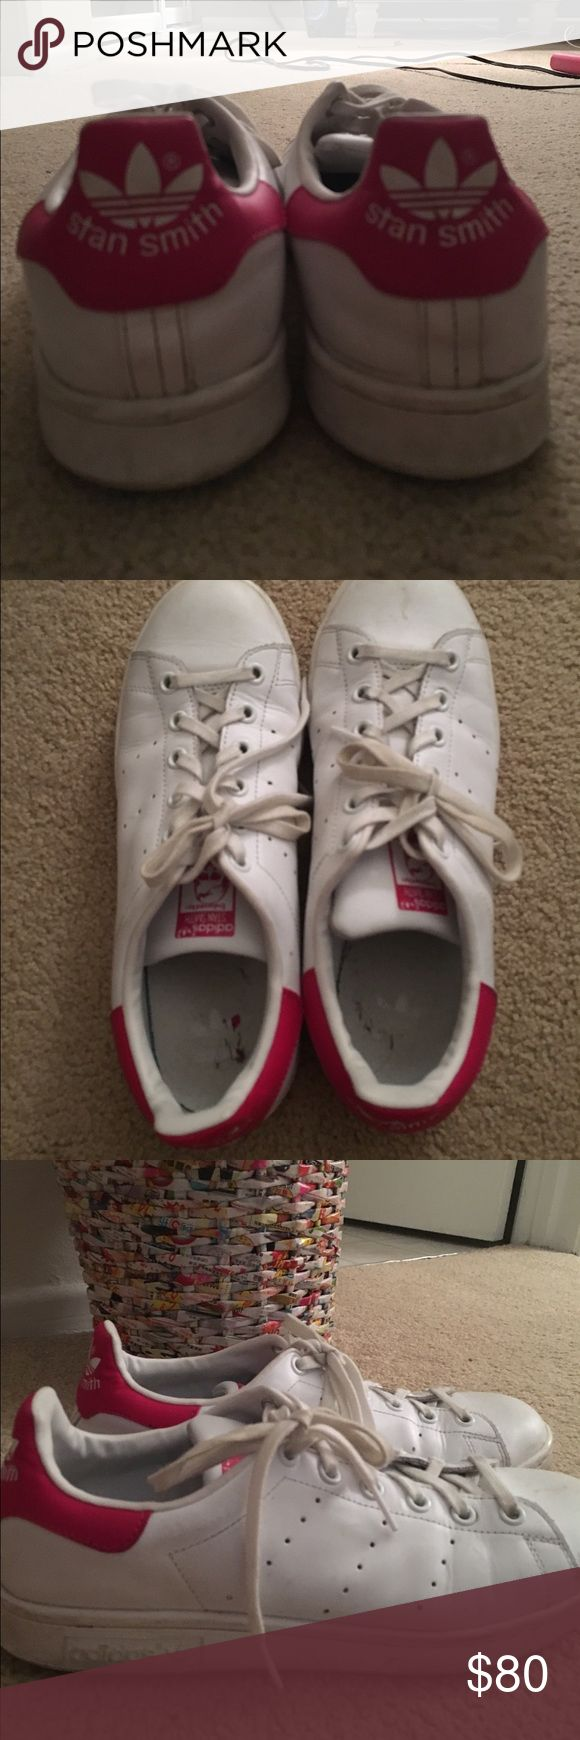 Adidas Stan Smith shoes Stan Smith pink sneakers/ Size: 7 US in Womens adidas Shoes